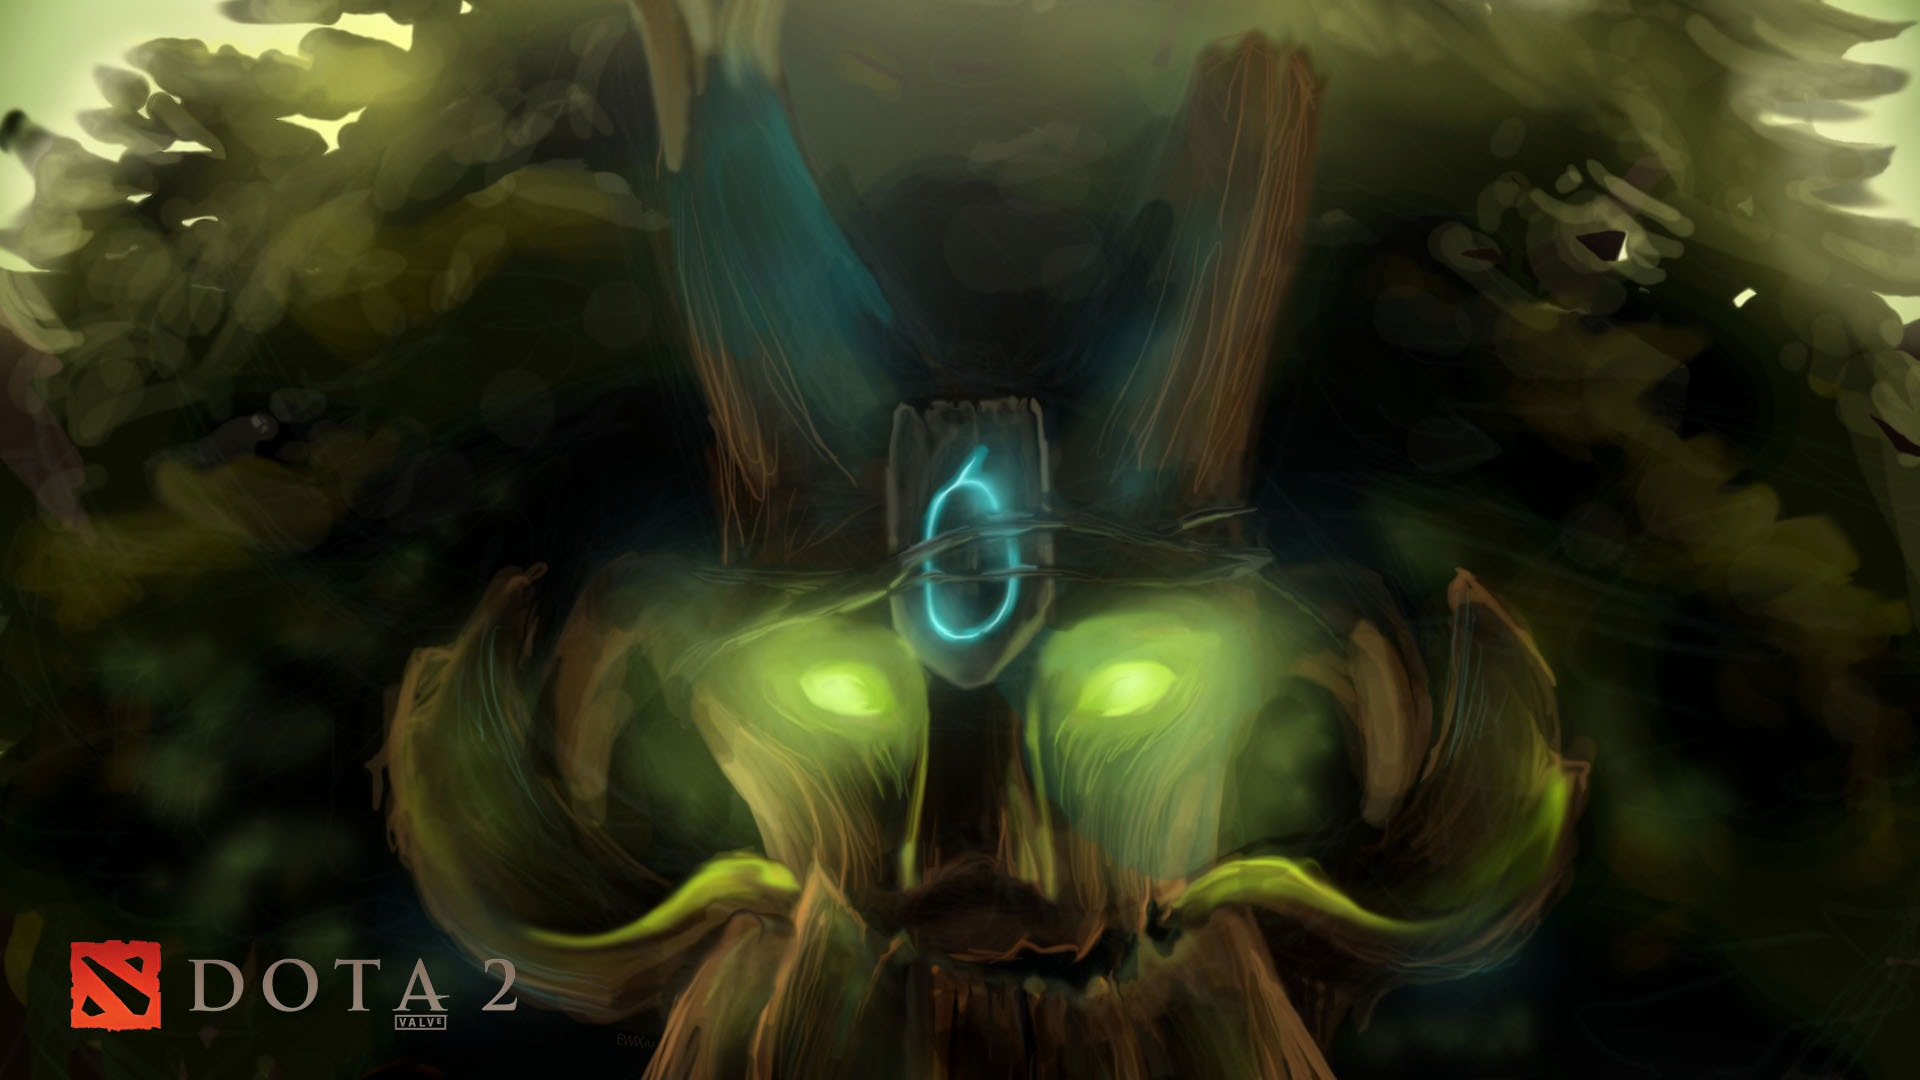 Dota2 : Treant Protector Wallpapers